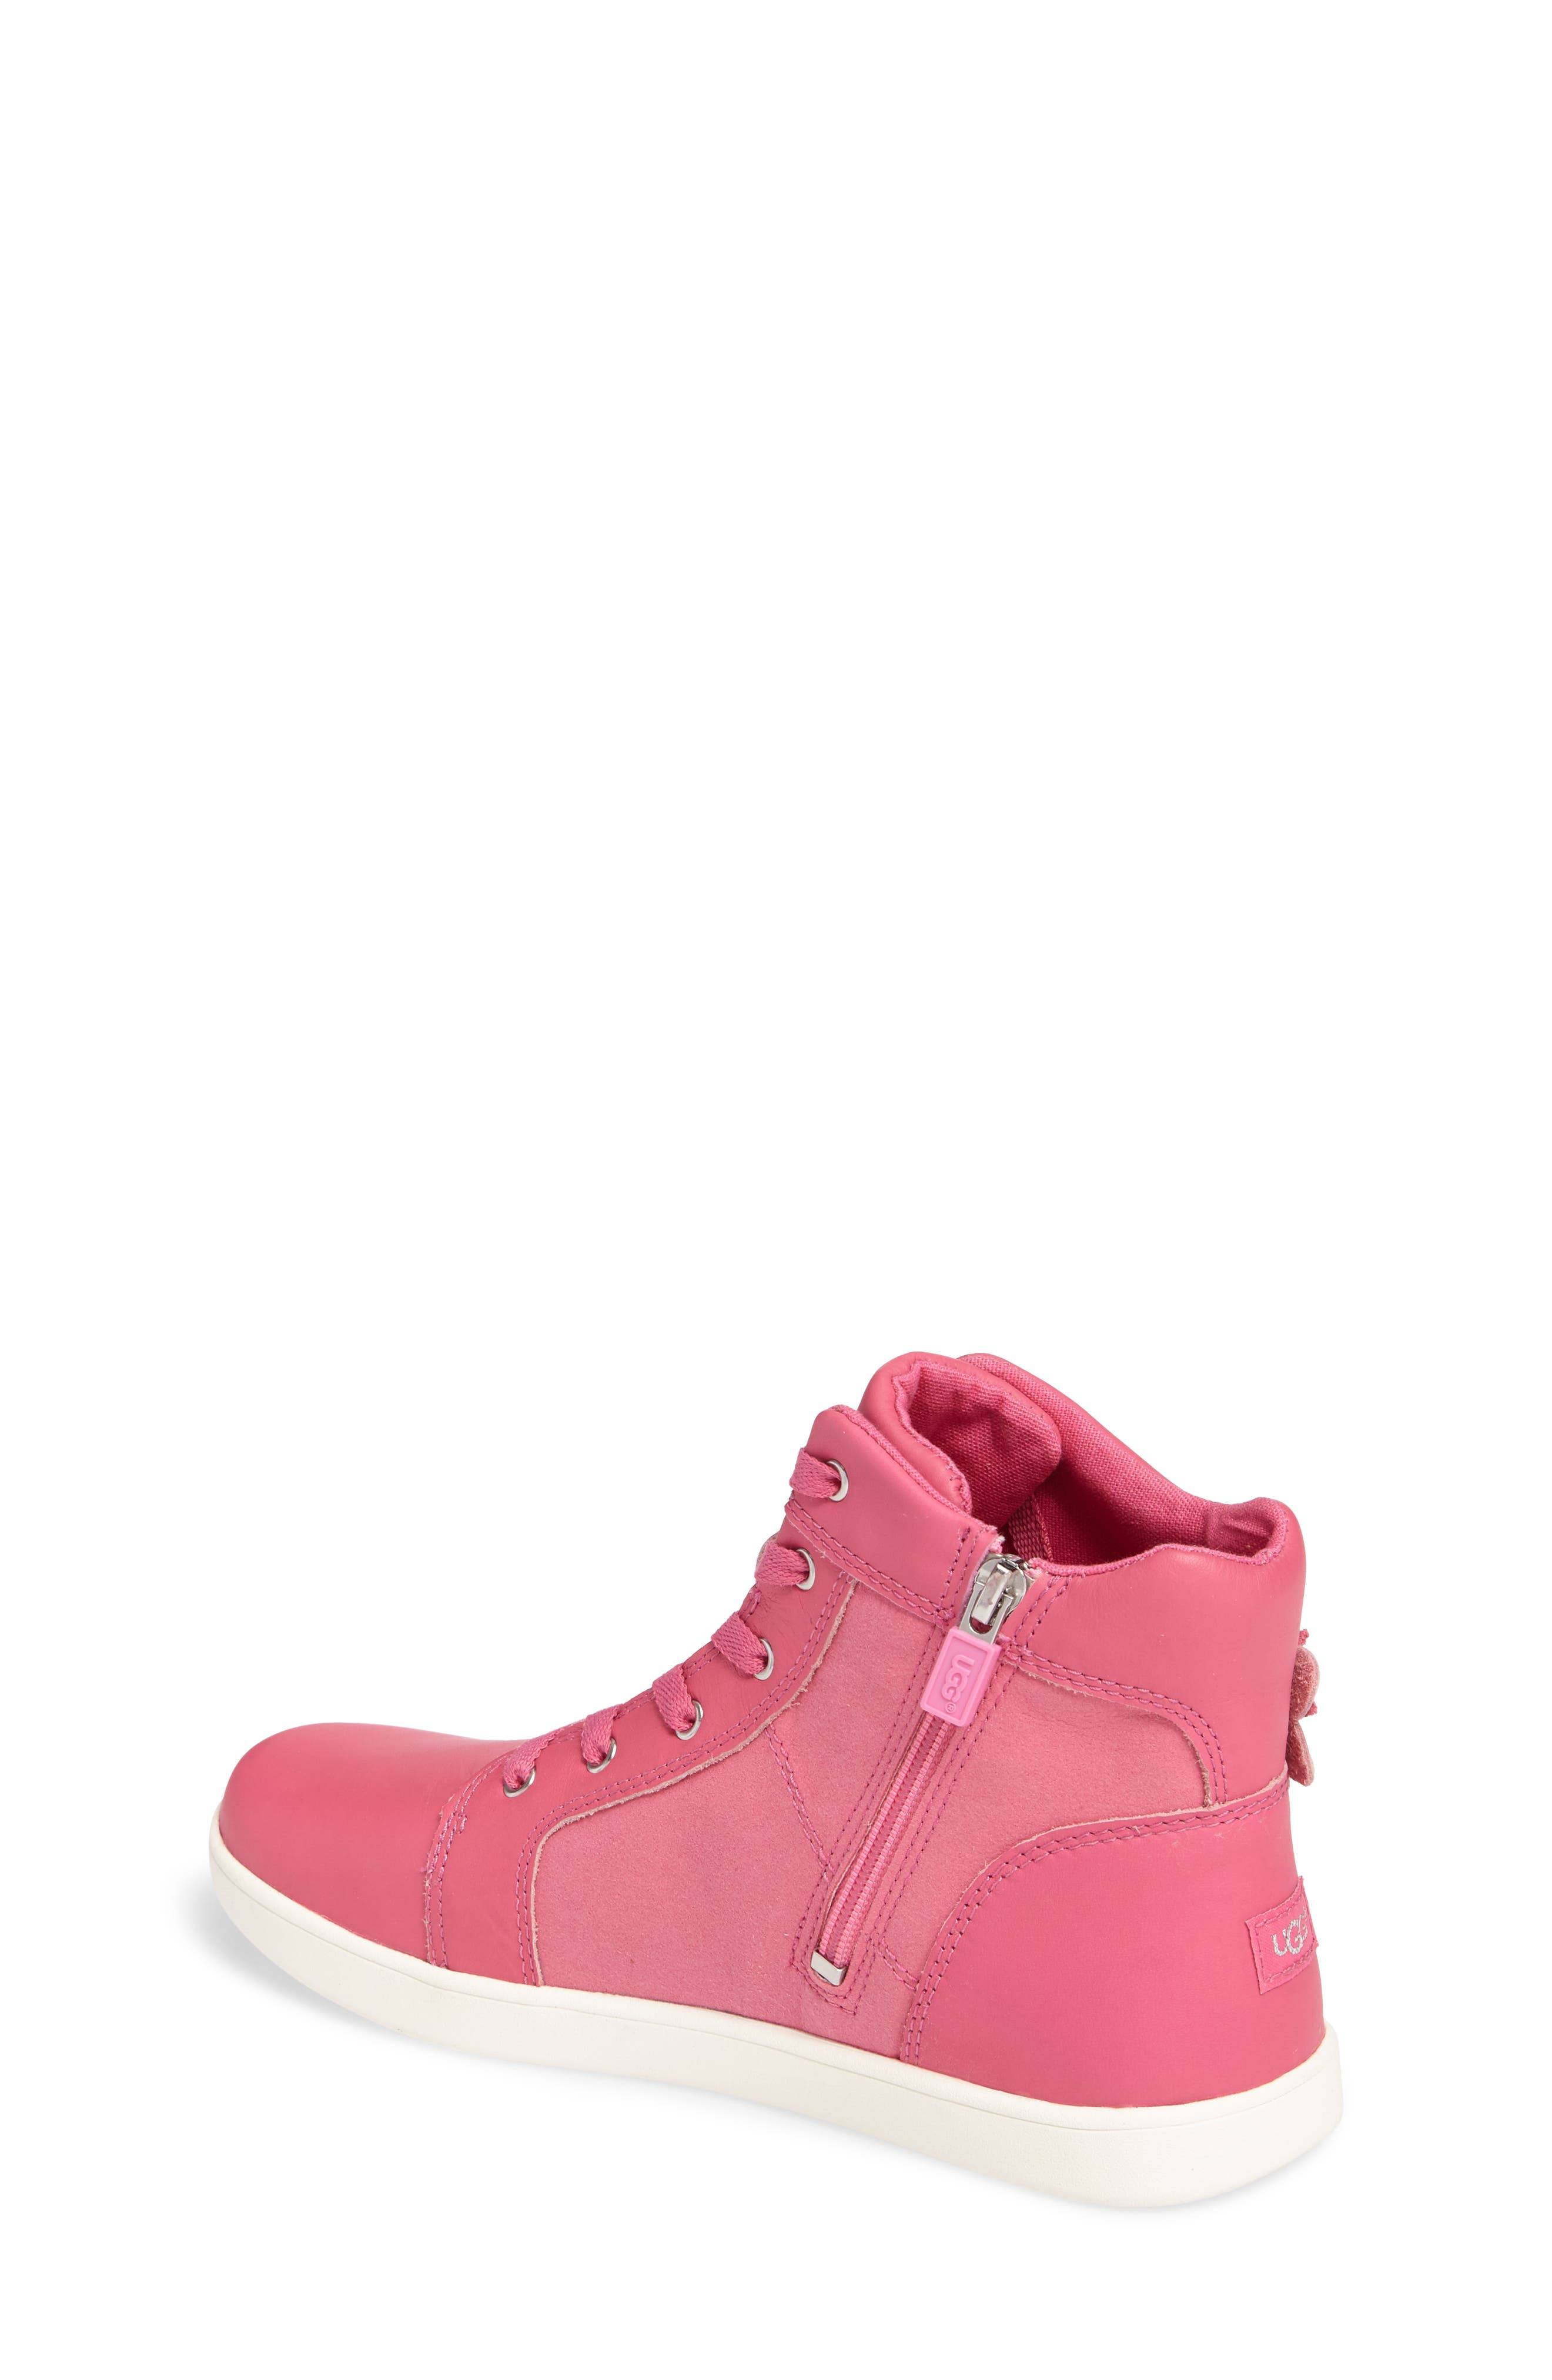 Alternate Image 2  - UGG® Schyler Petal Embellished High Top Sneaker (Little Kid & Big Kid)